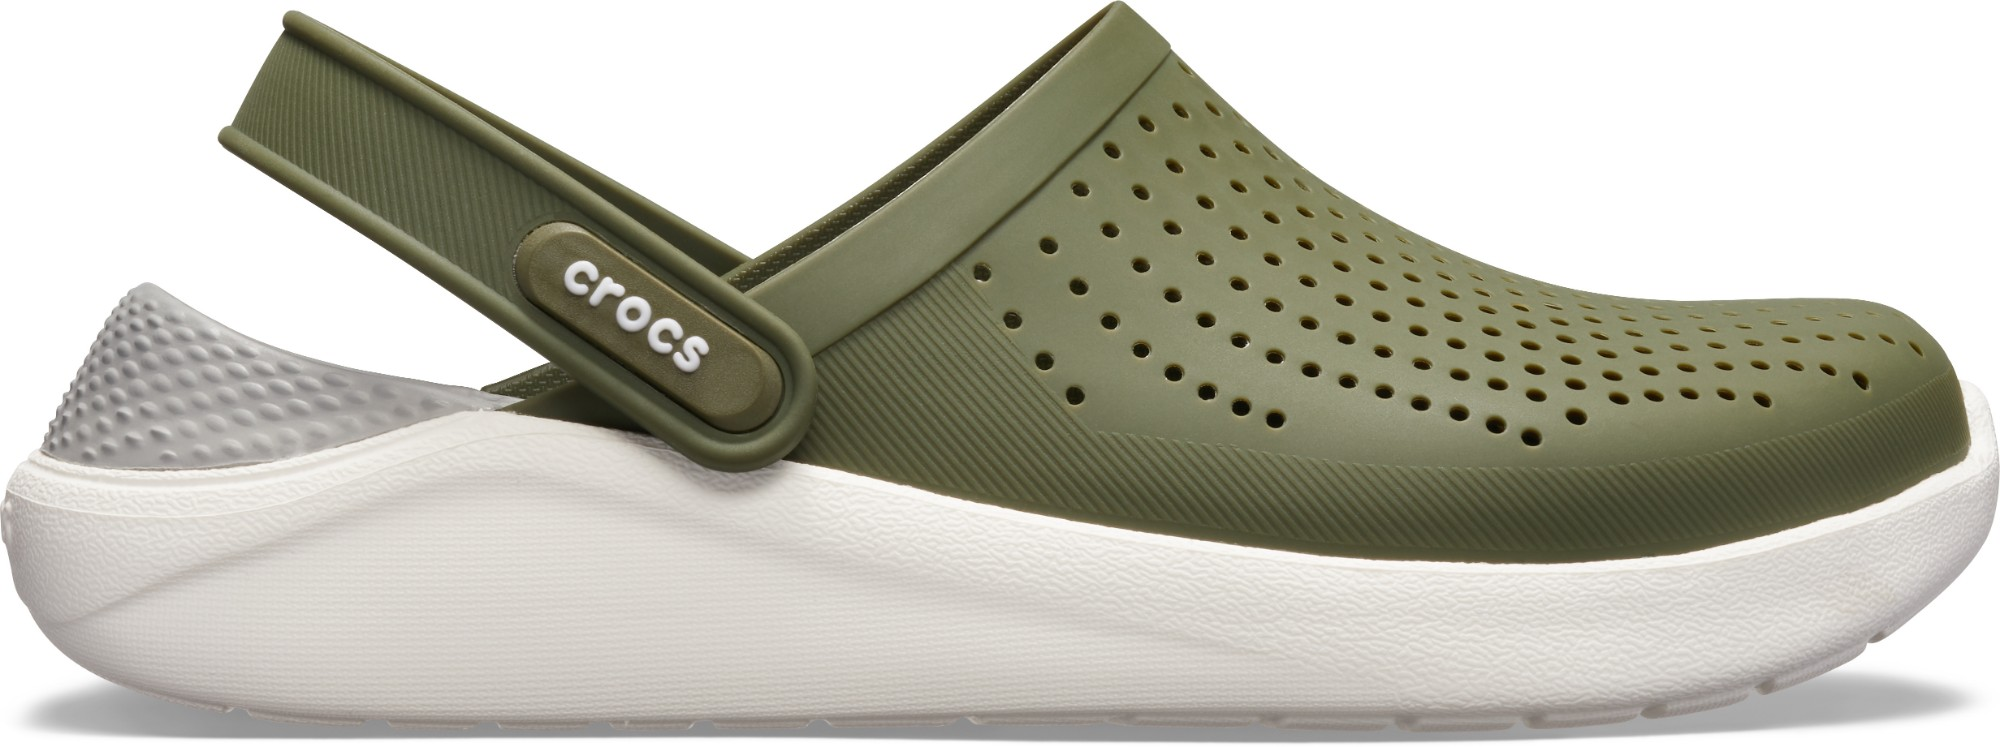 Crocs™ LiteRide Clog Army Green/White 47,5